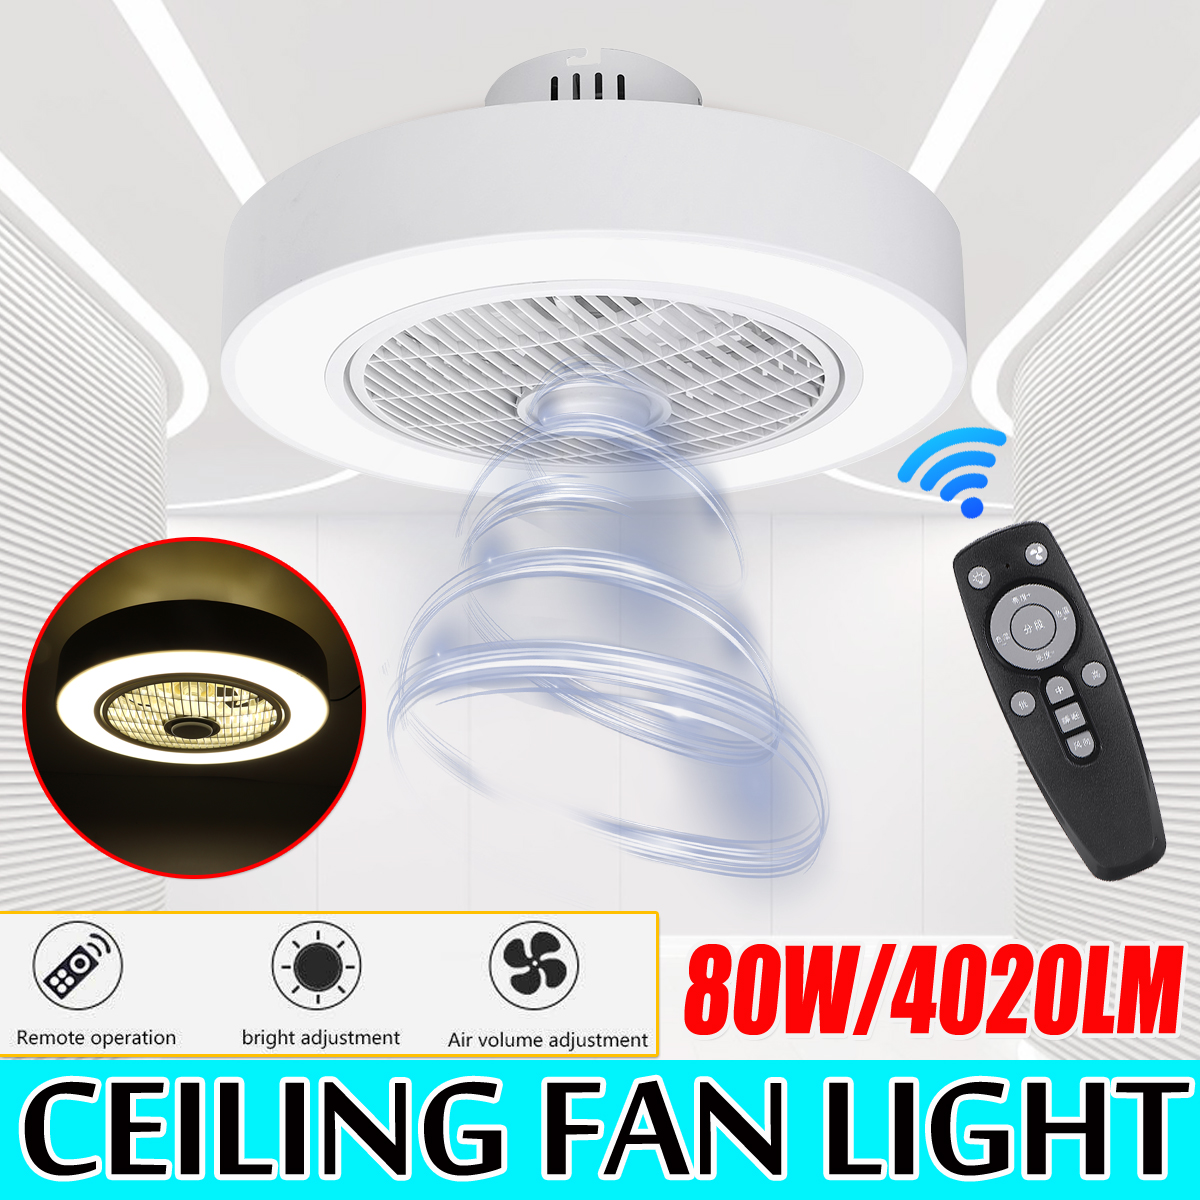 Modern Acrylic Light Ceiling Fan Lamp Remote Control Three-color Dimming Ceiling Fan Light White Decor Light For Home AC185-250V